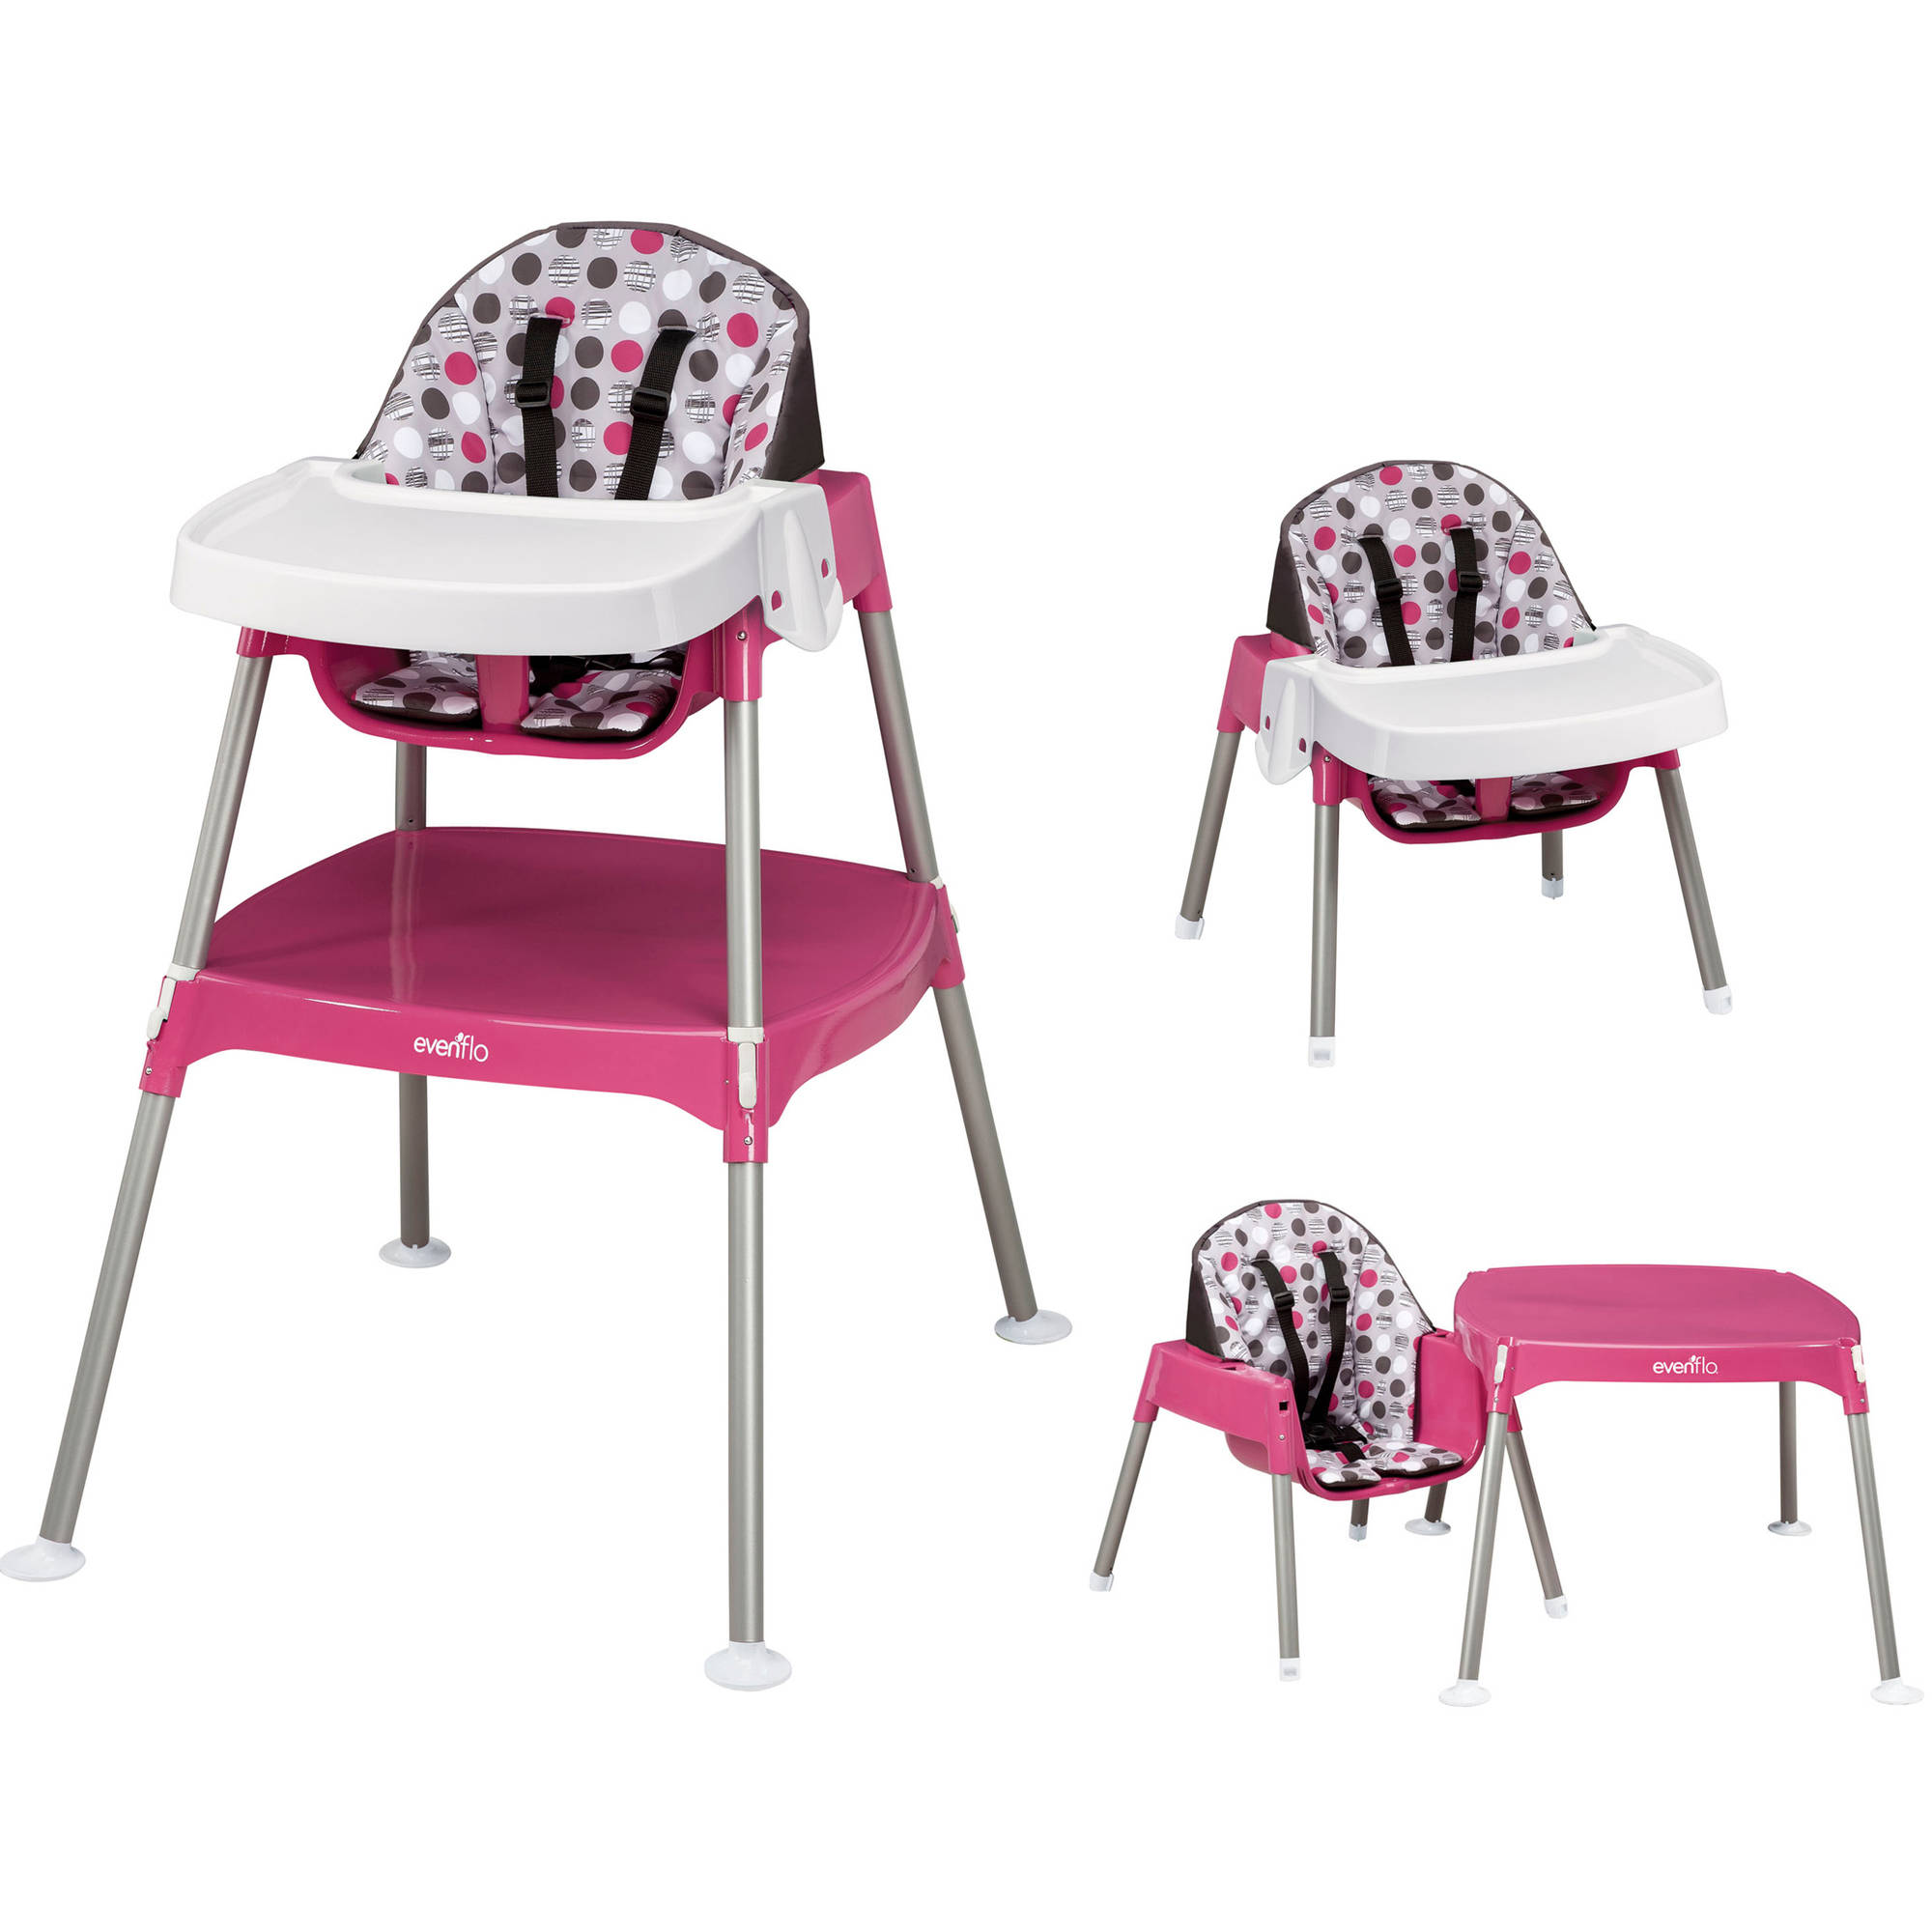 Baby trend high chair pink - Evenflo Convertible High Chair Dottie Rose